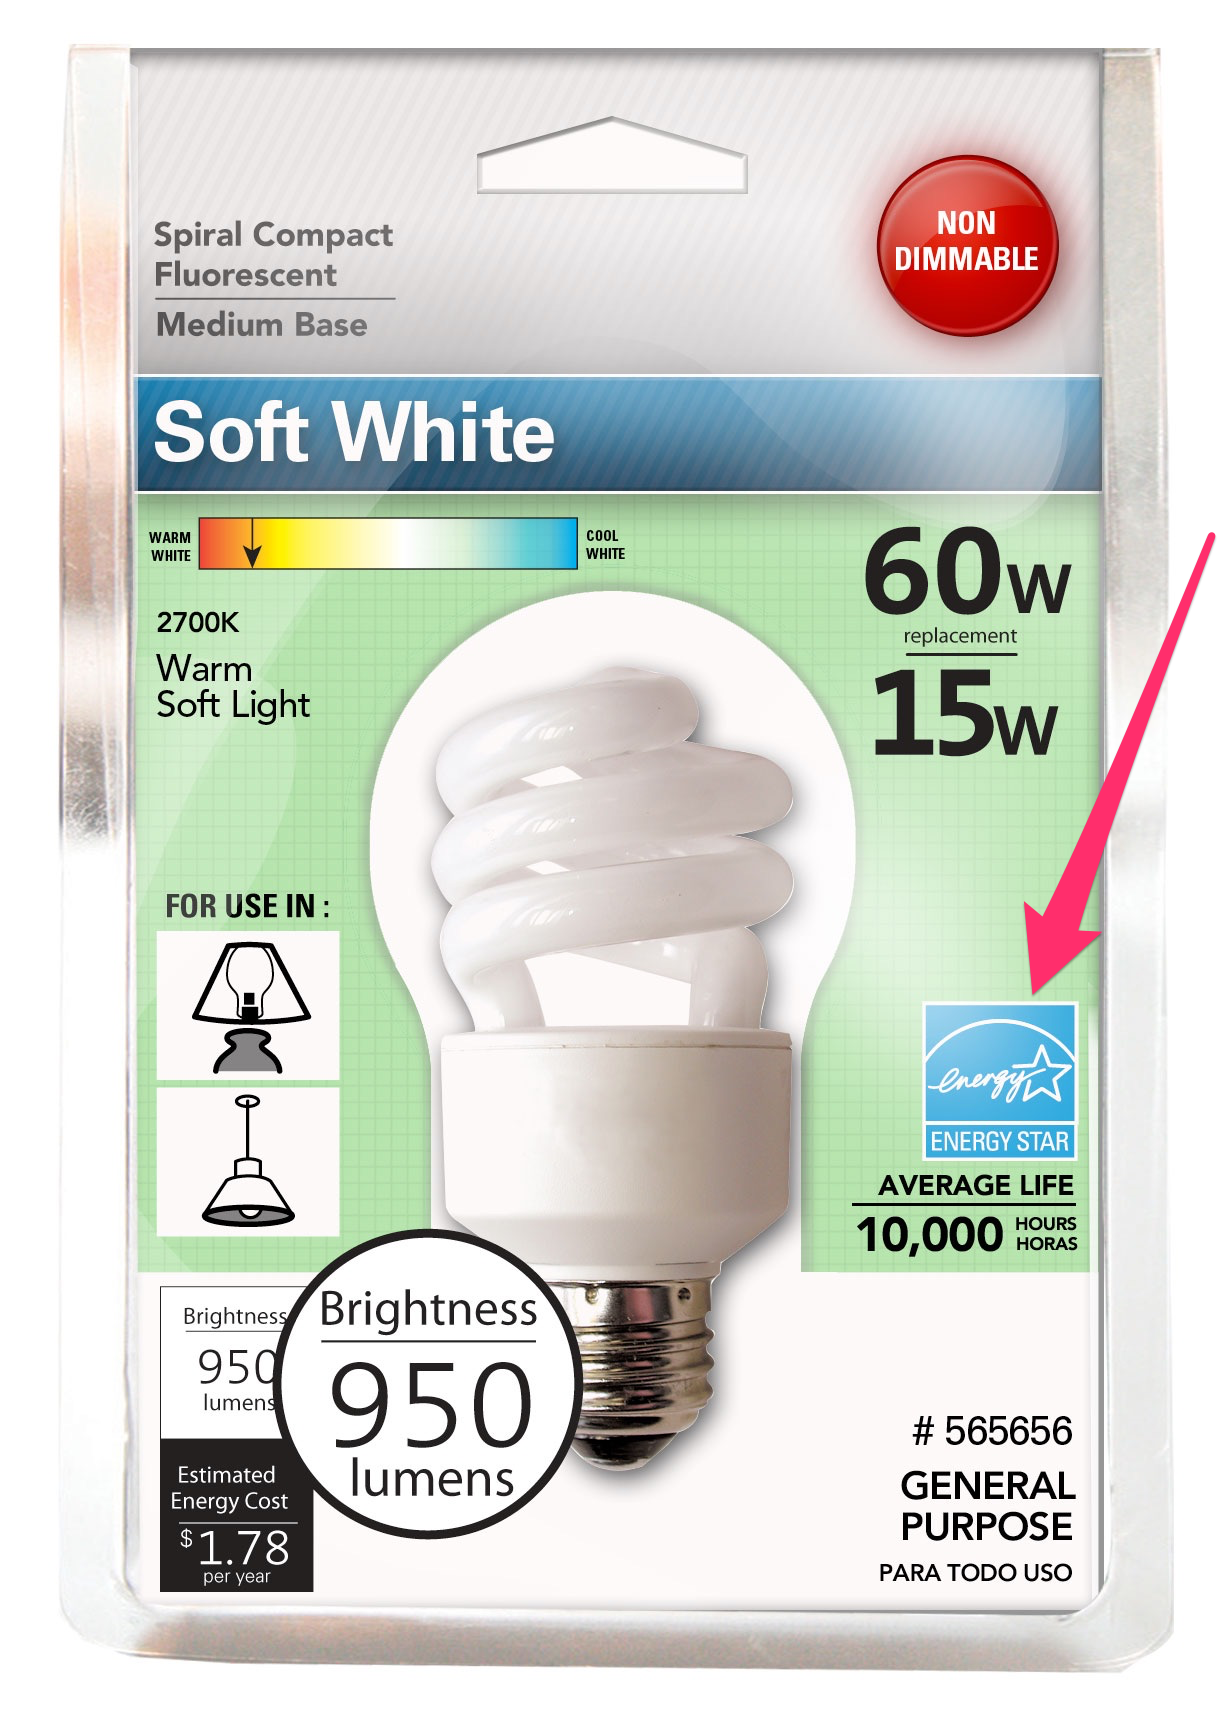 Why_should_I_choose_ENERGY_STAR_certified_lighting_products.png